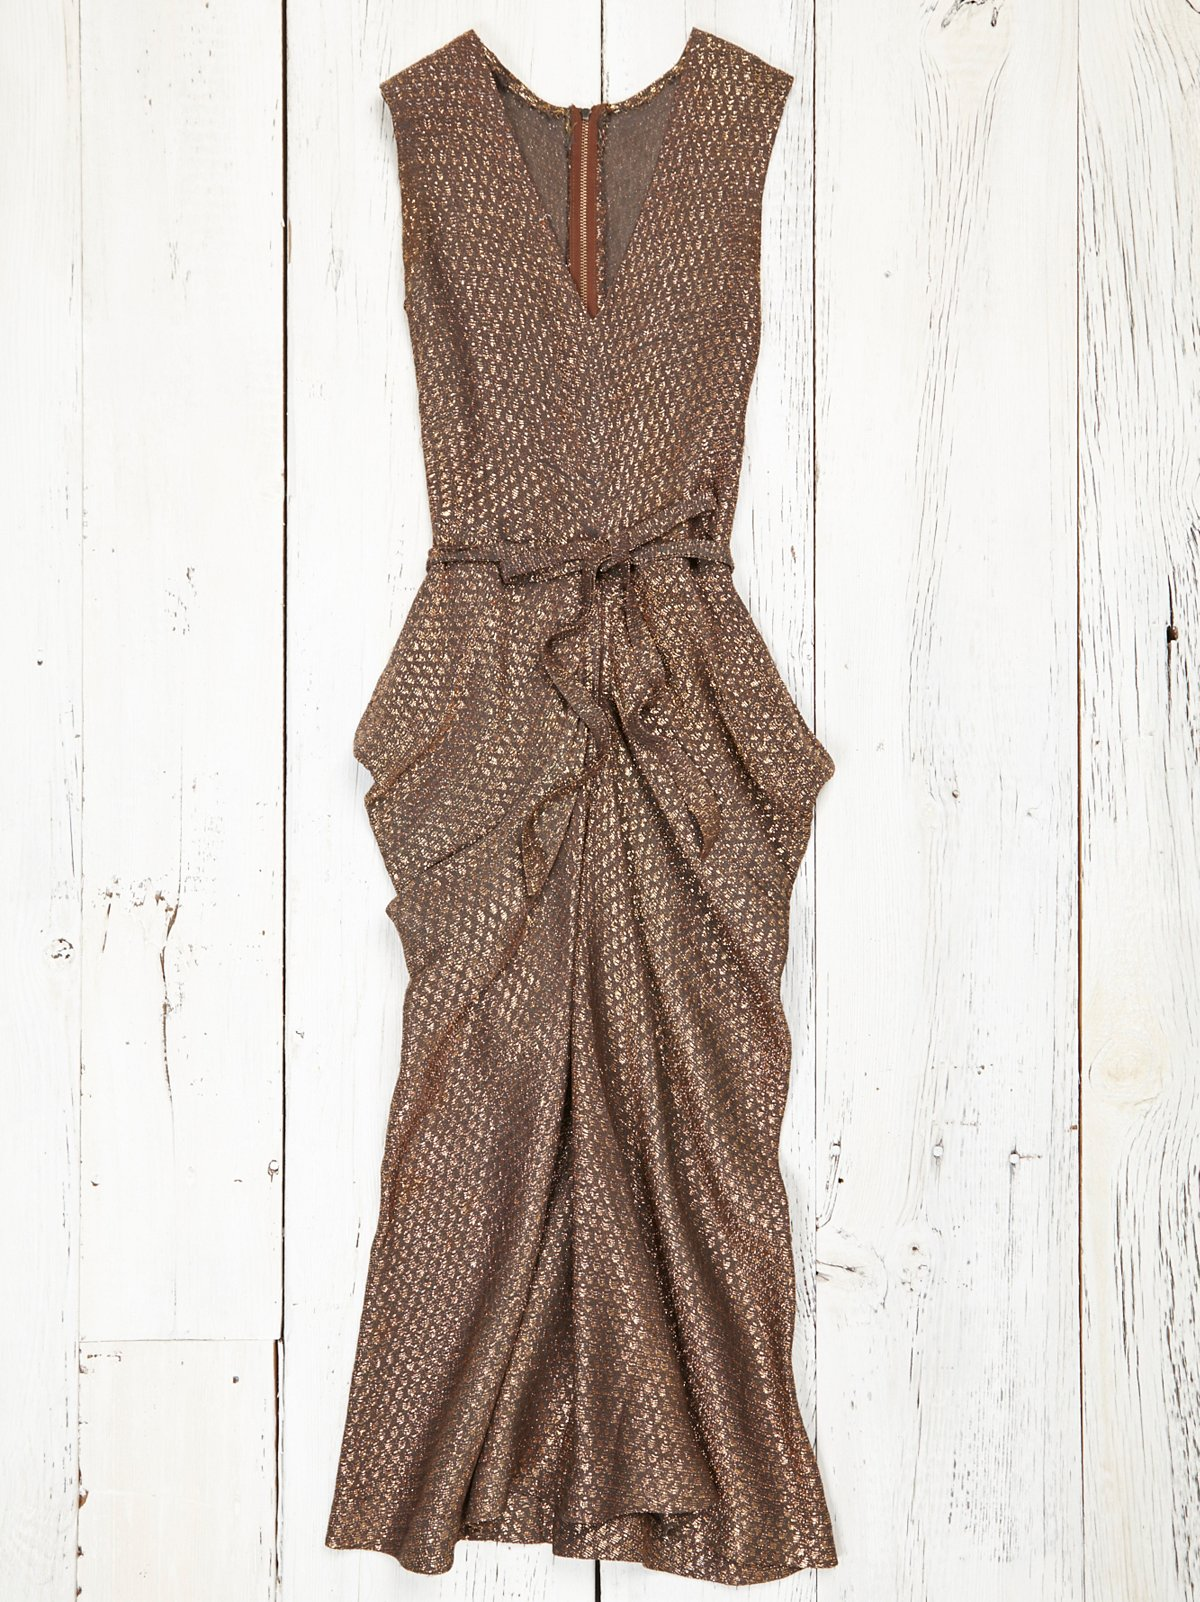 Vintage 1970s Gold Wrap Dress